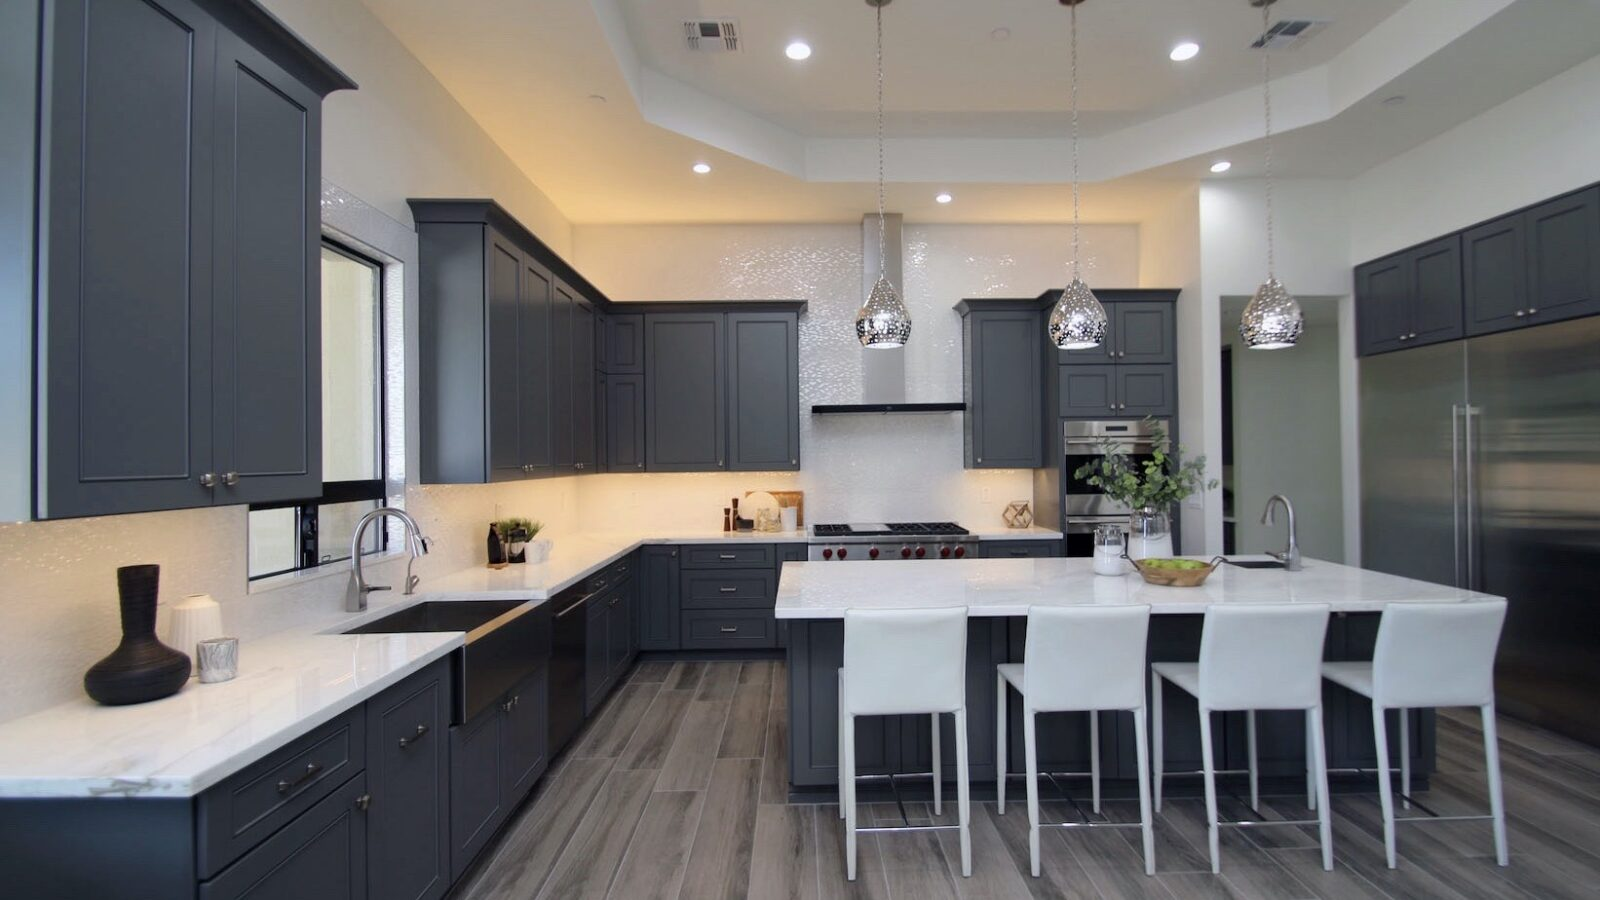 A grey-painted kitchen